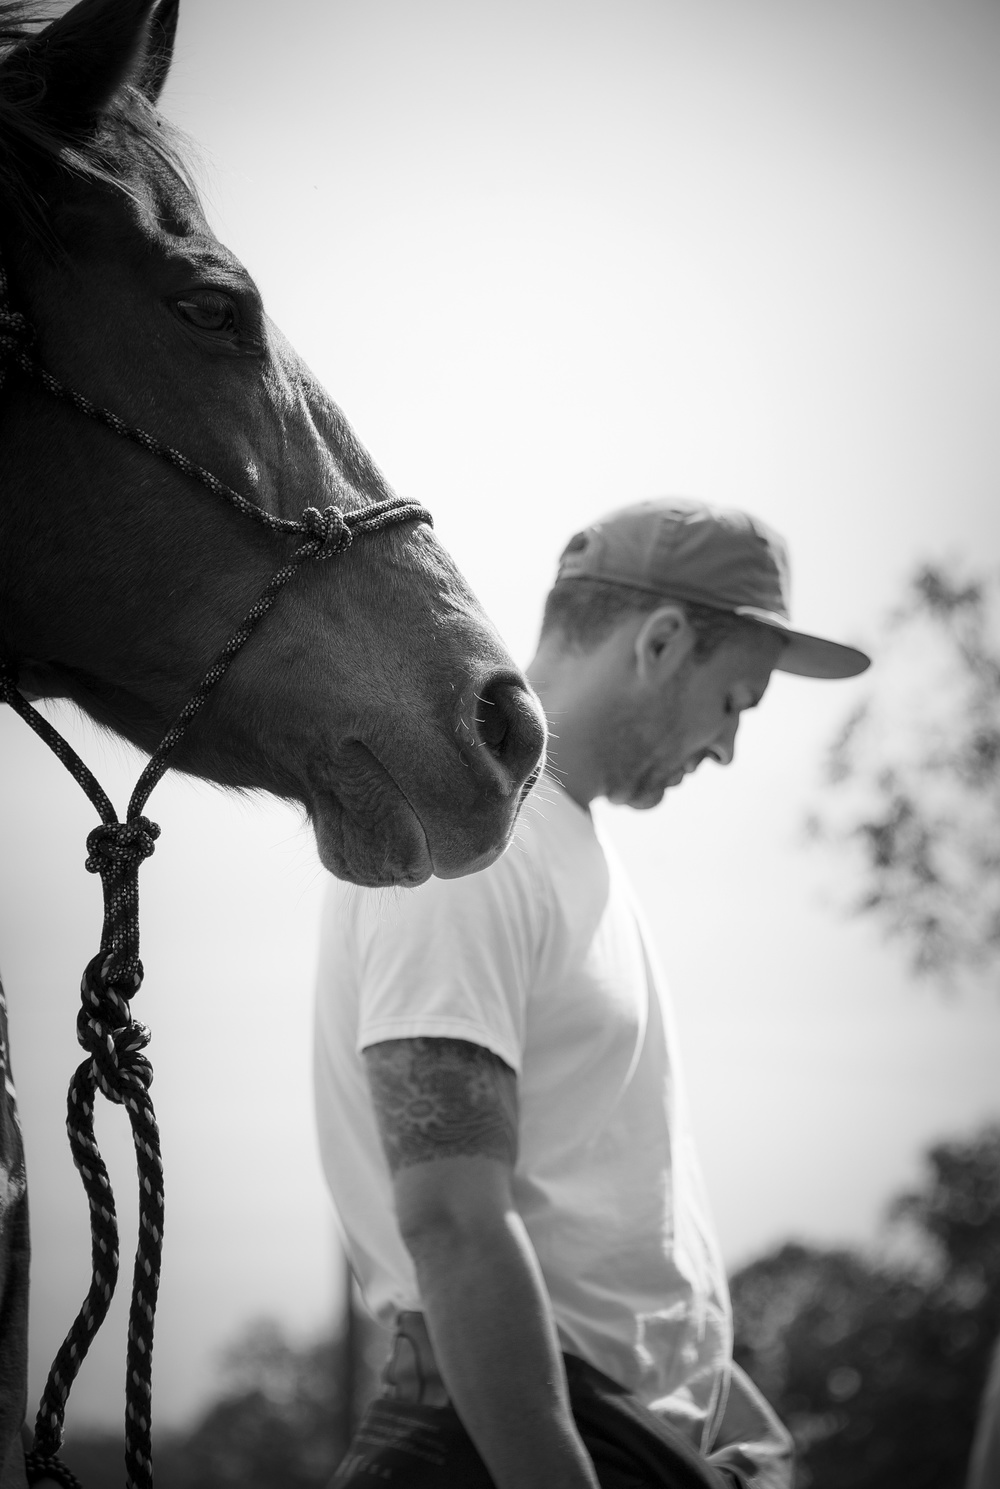 equine-therapy-rehab.jpg